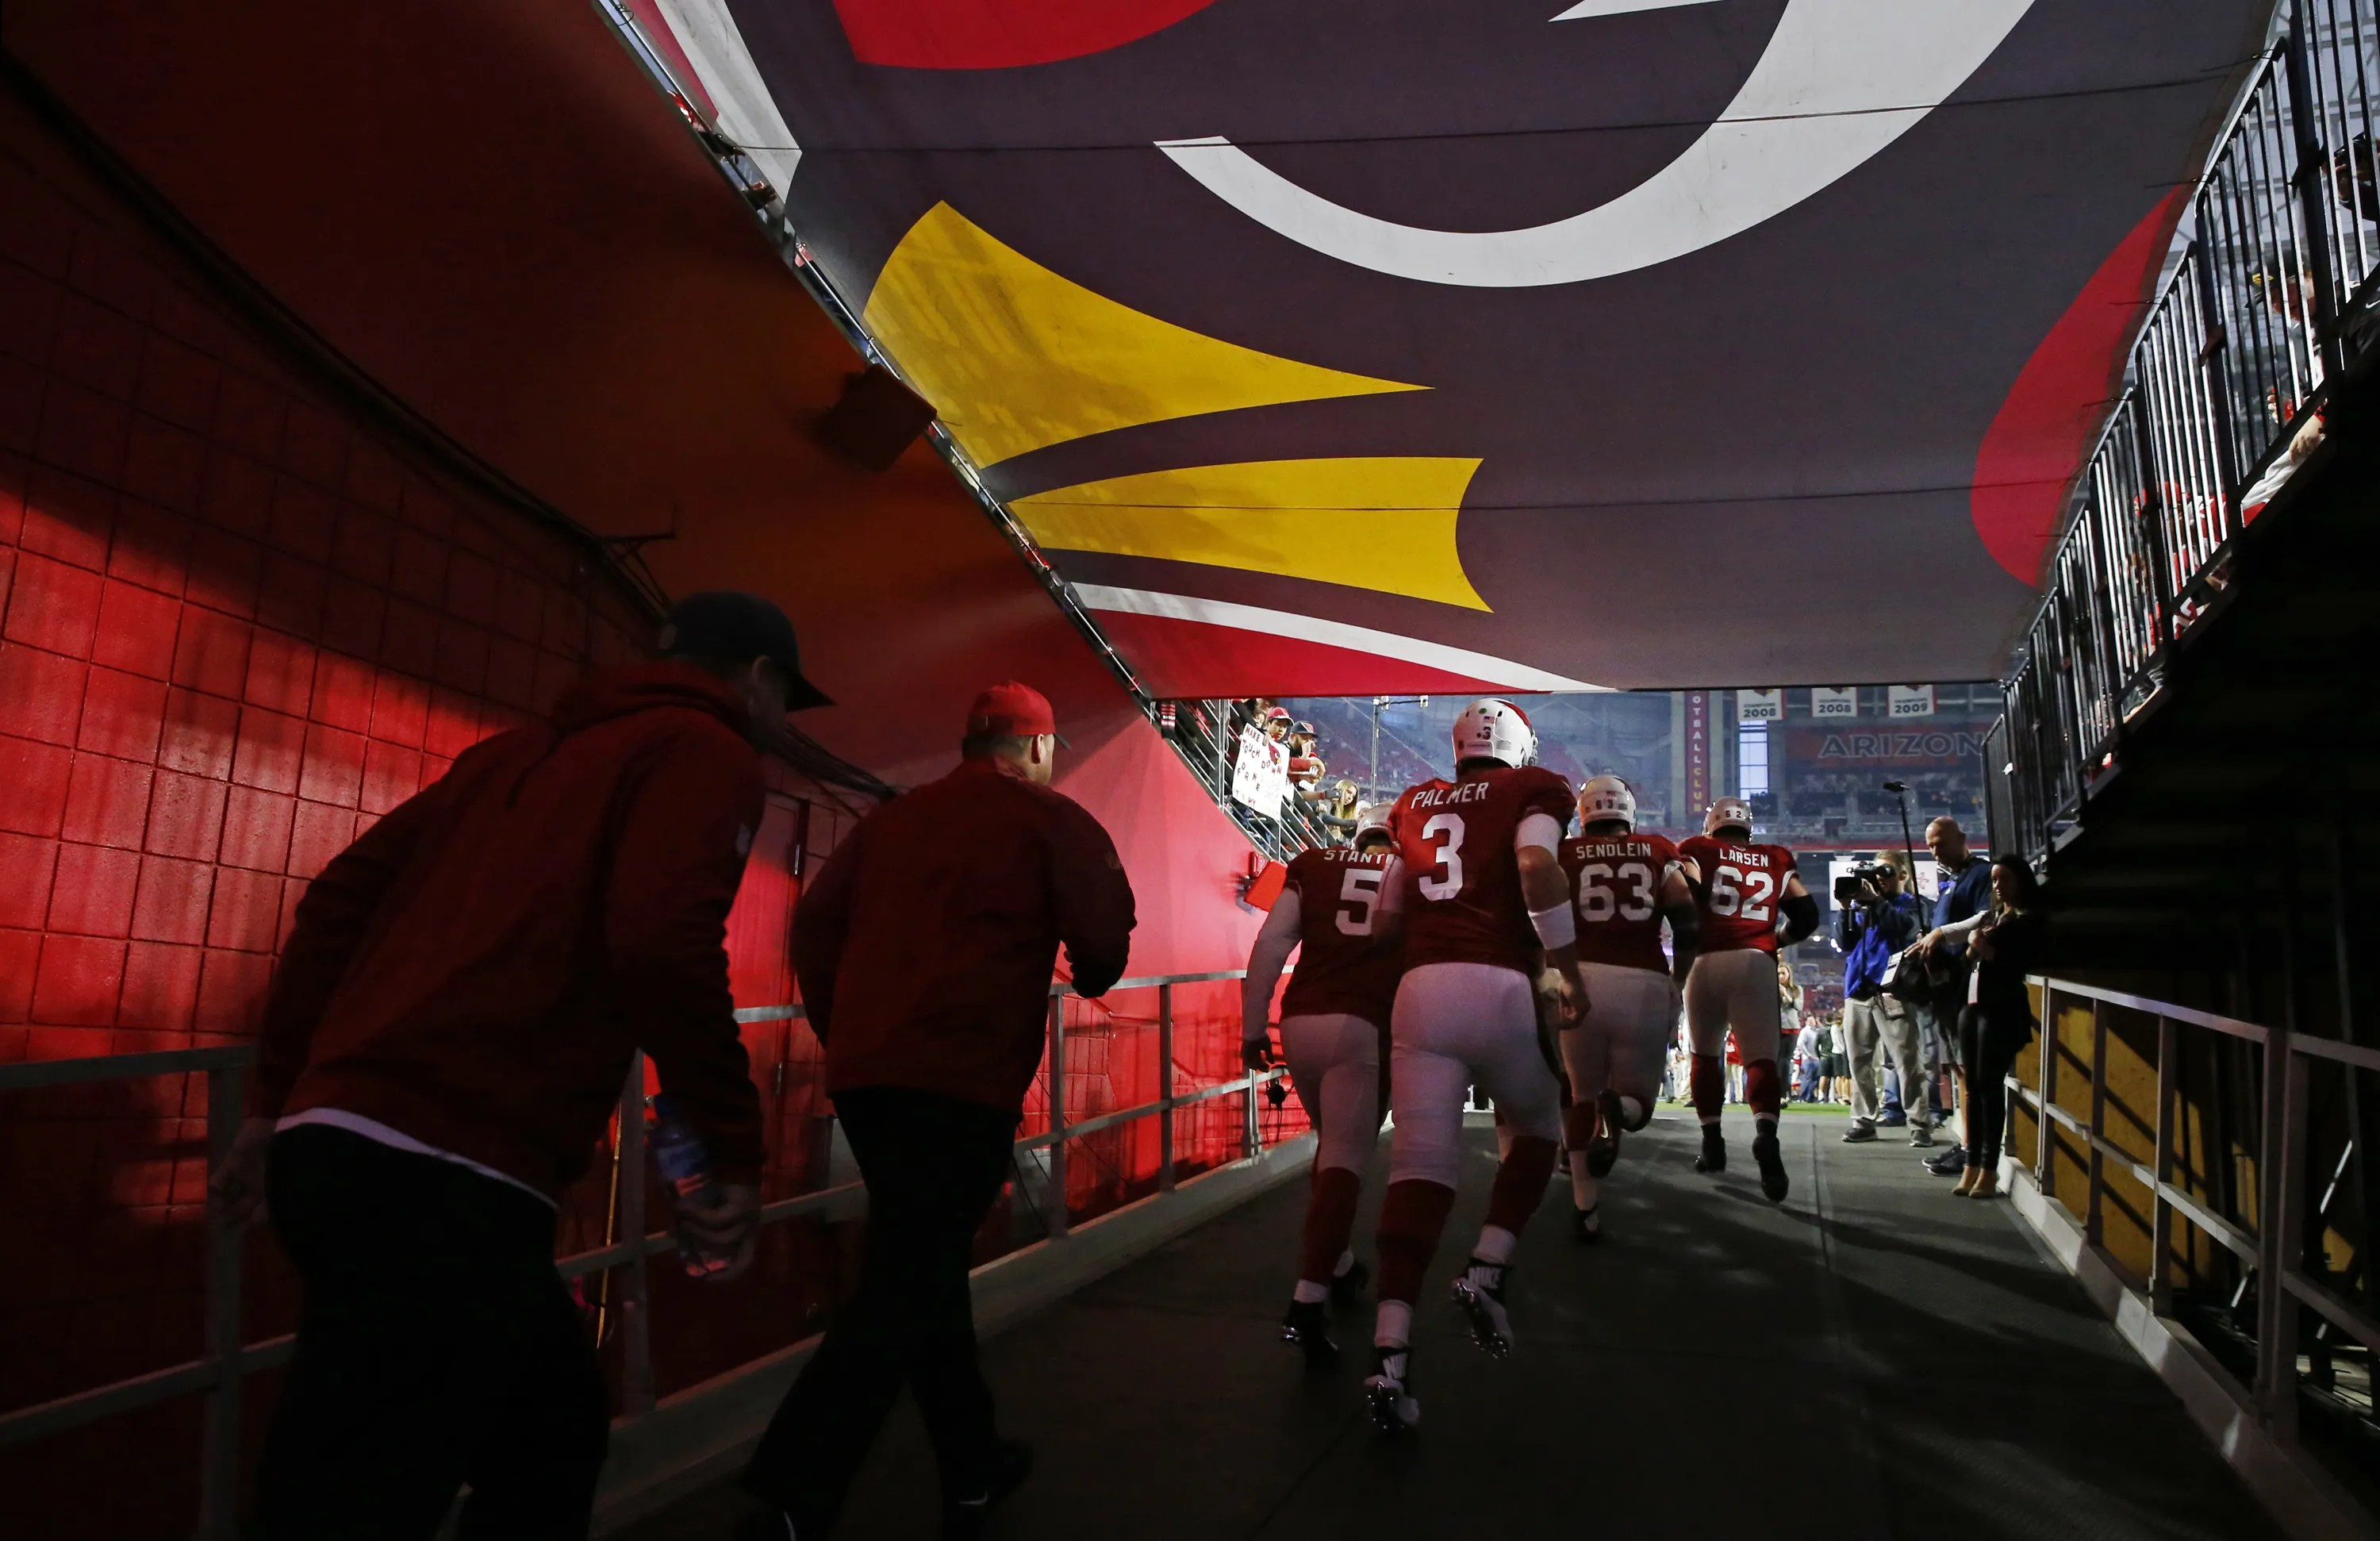 Arizona cardinals depth chart entering nfl game vs washington redskins also roster for rh azcentral